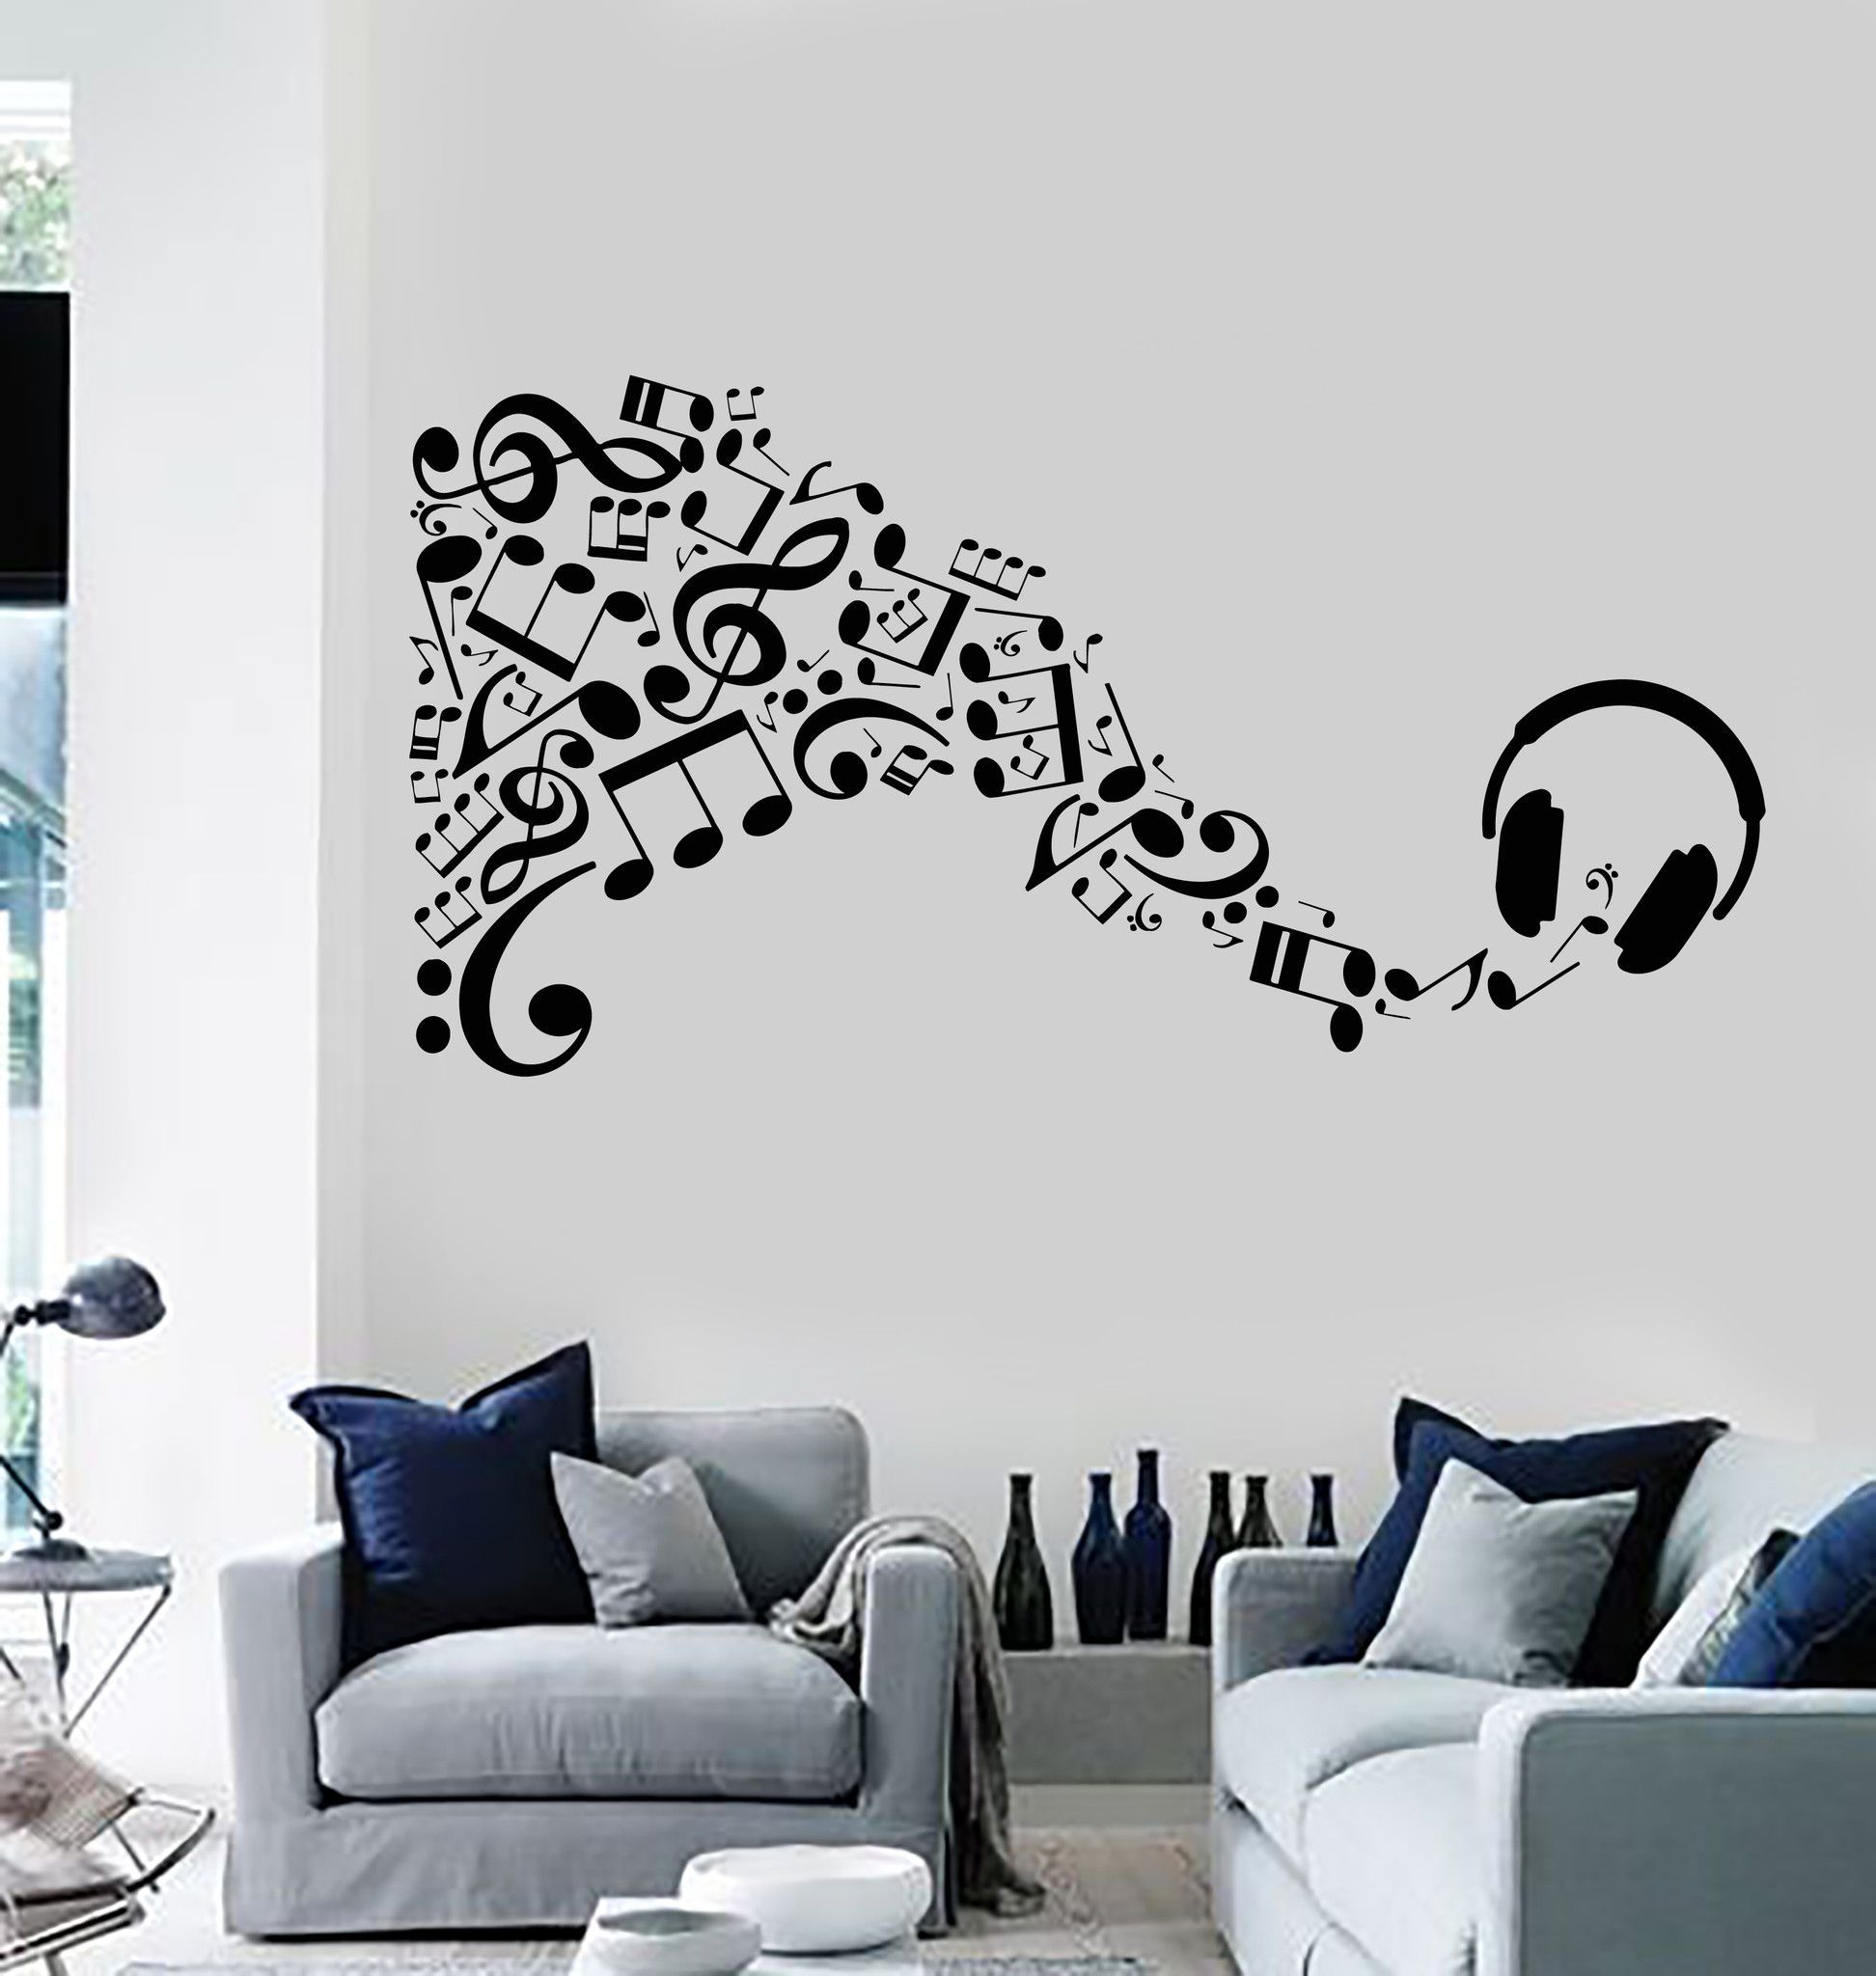 Vinyl Wall Decal Headphones Musical Notes Music Art Stickers